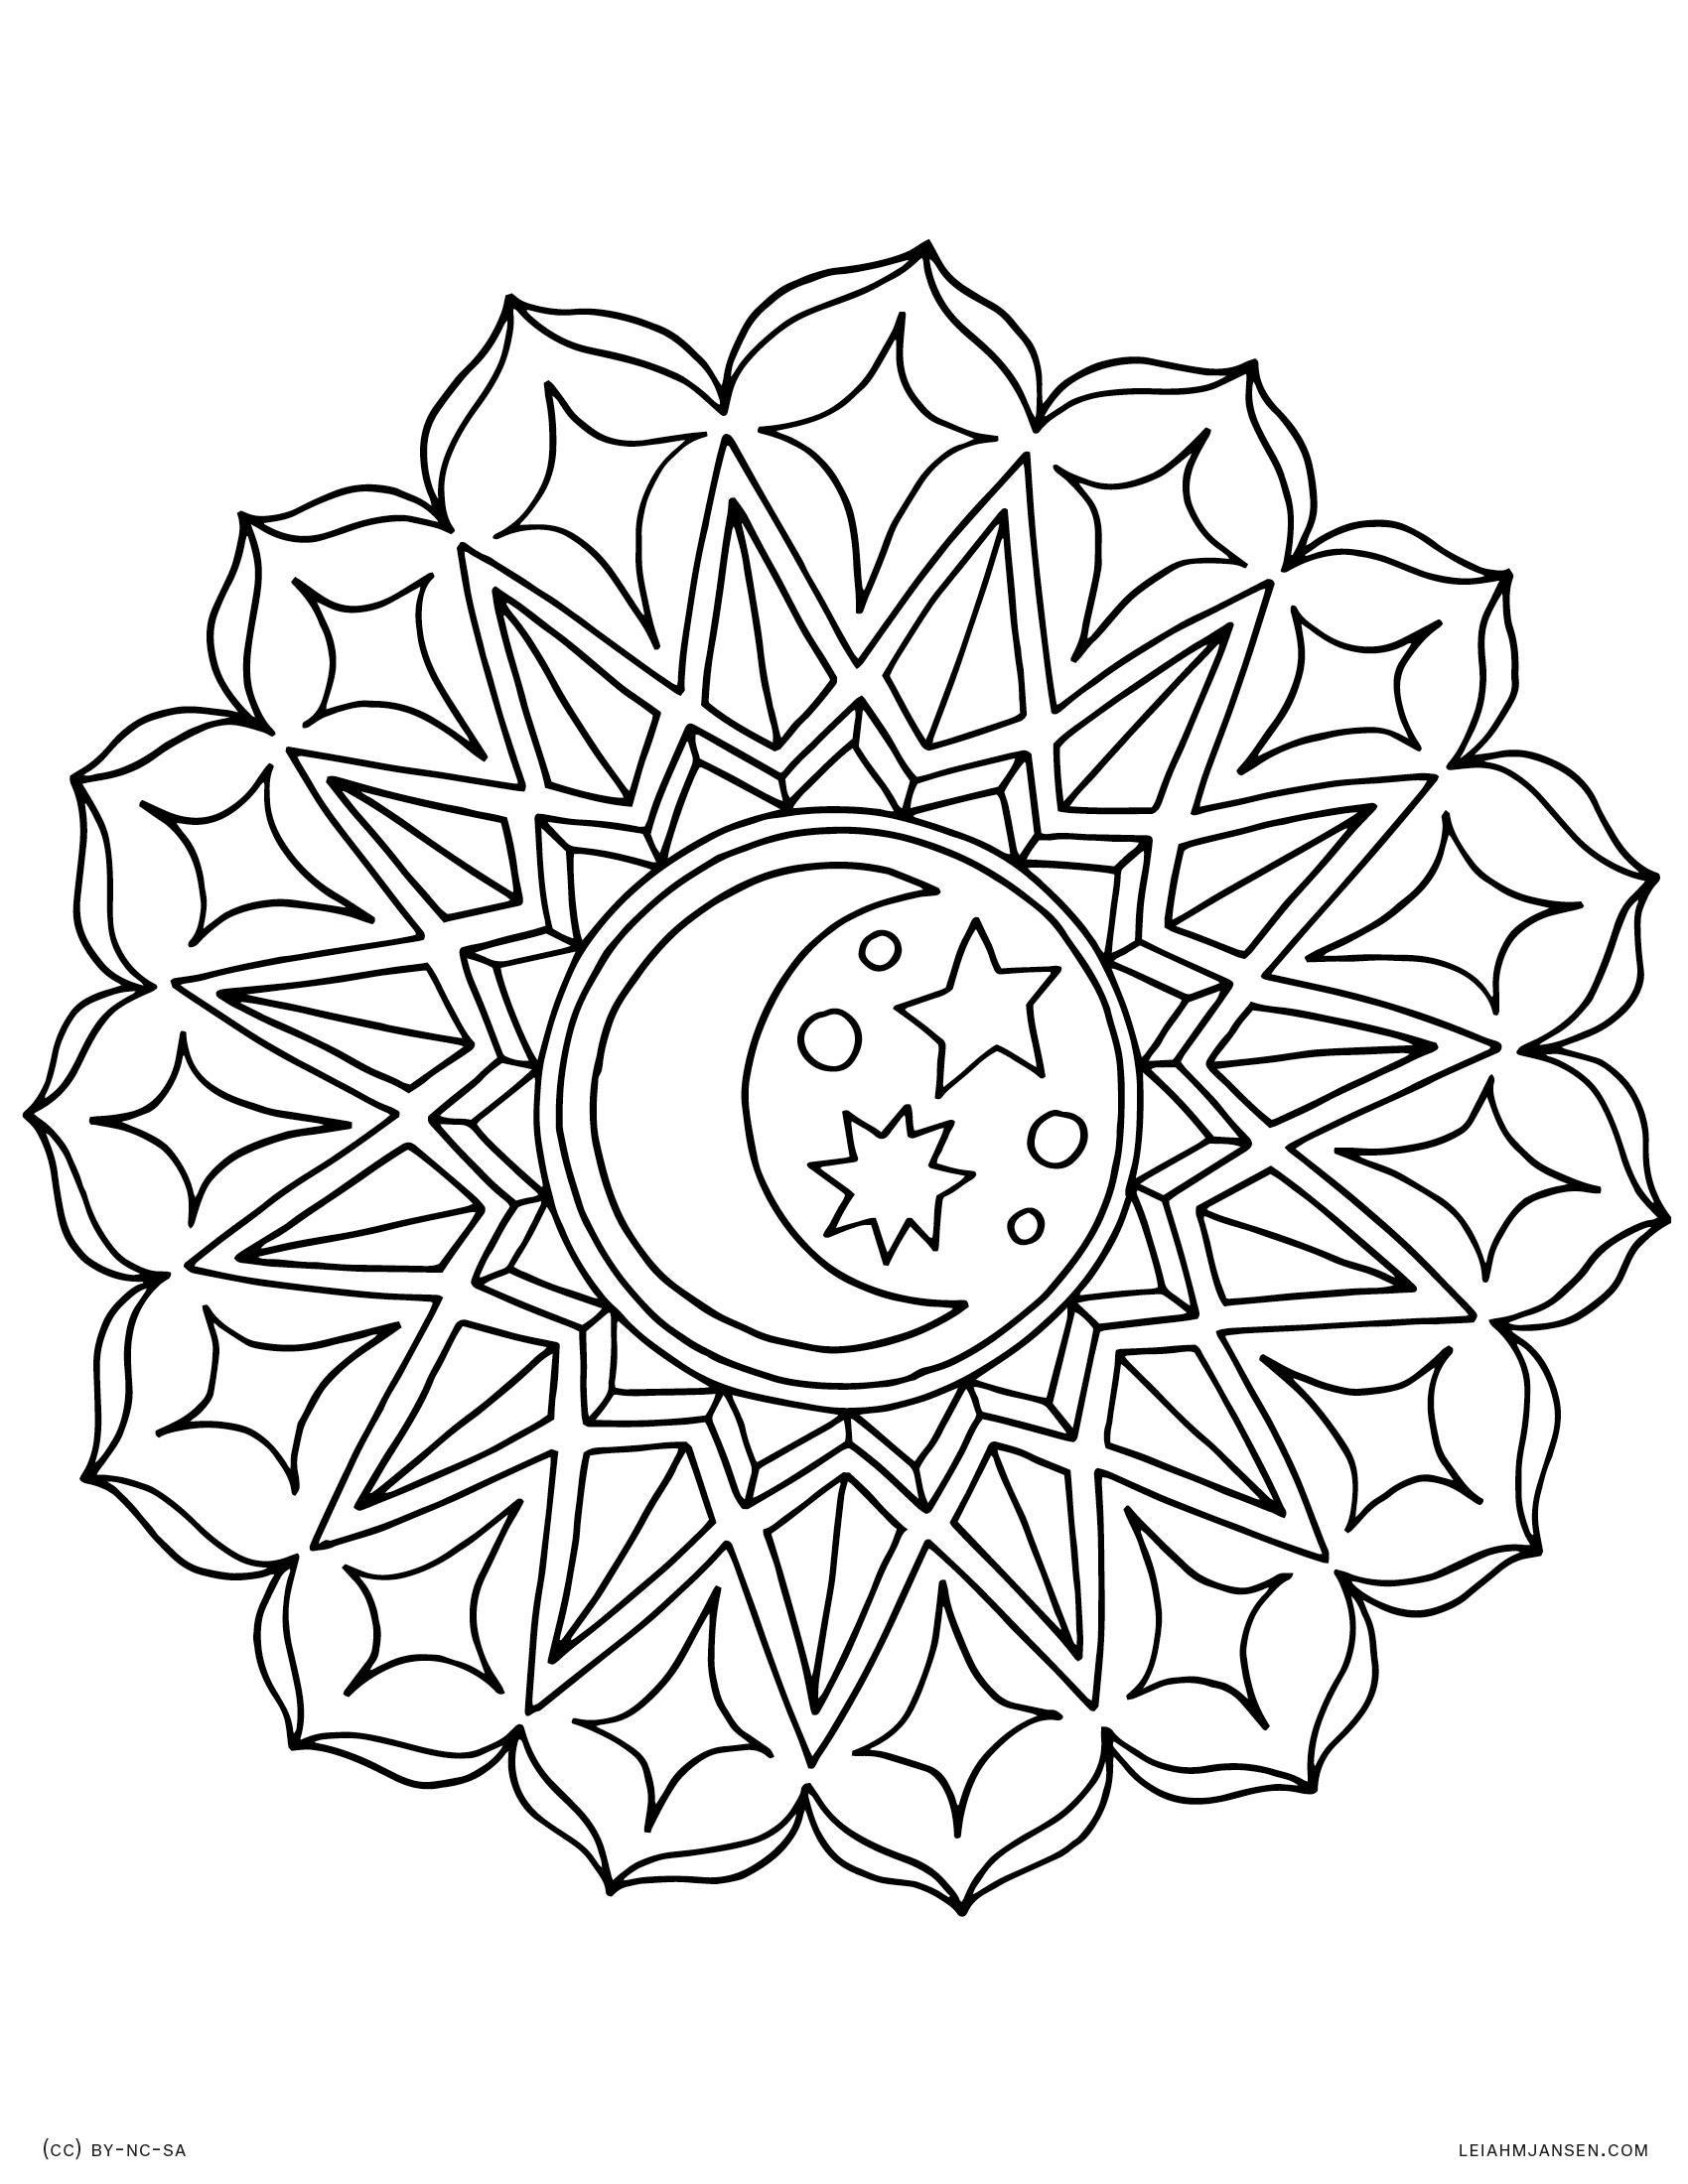 mandalas printable all things parchment craft a few parchment craft mandala printable mandalas